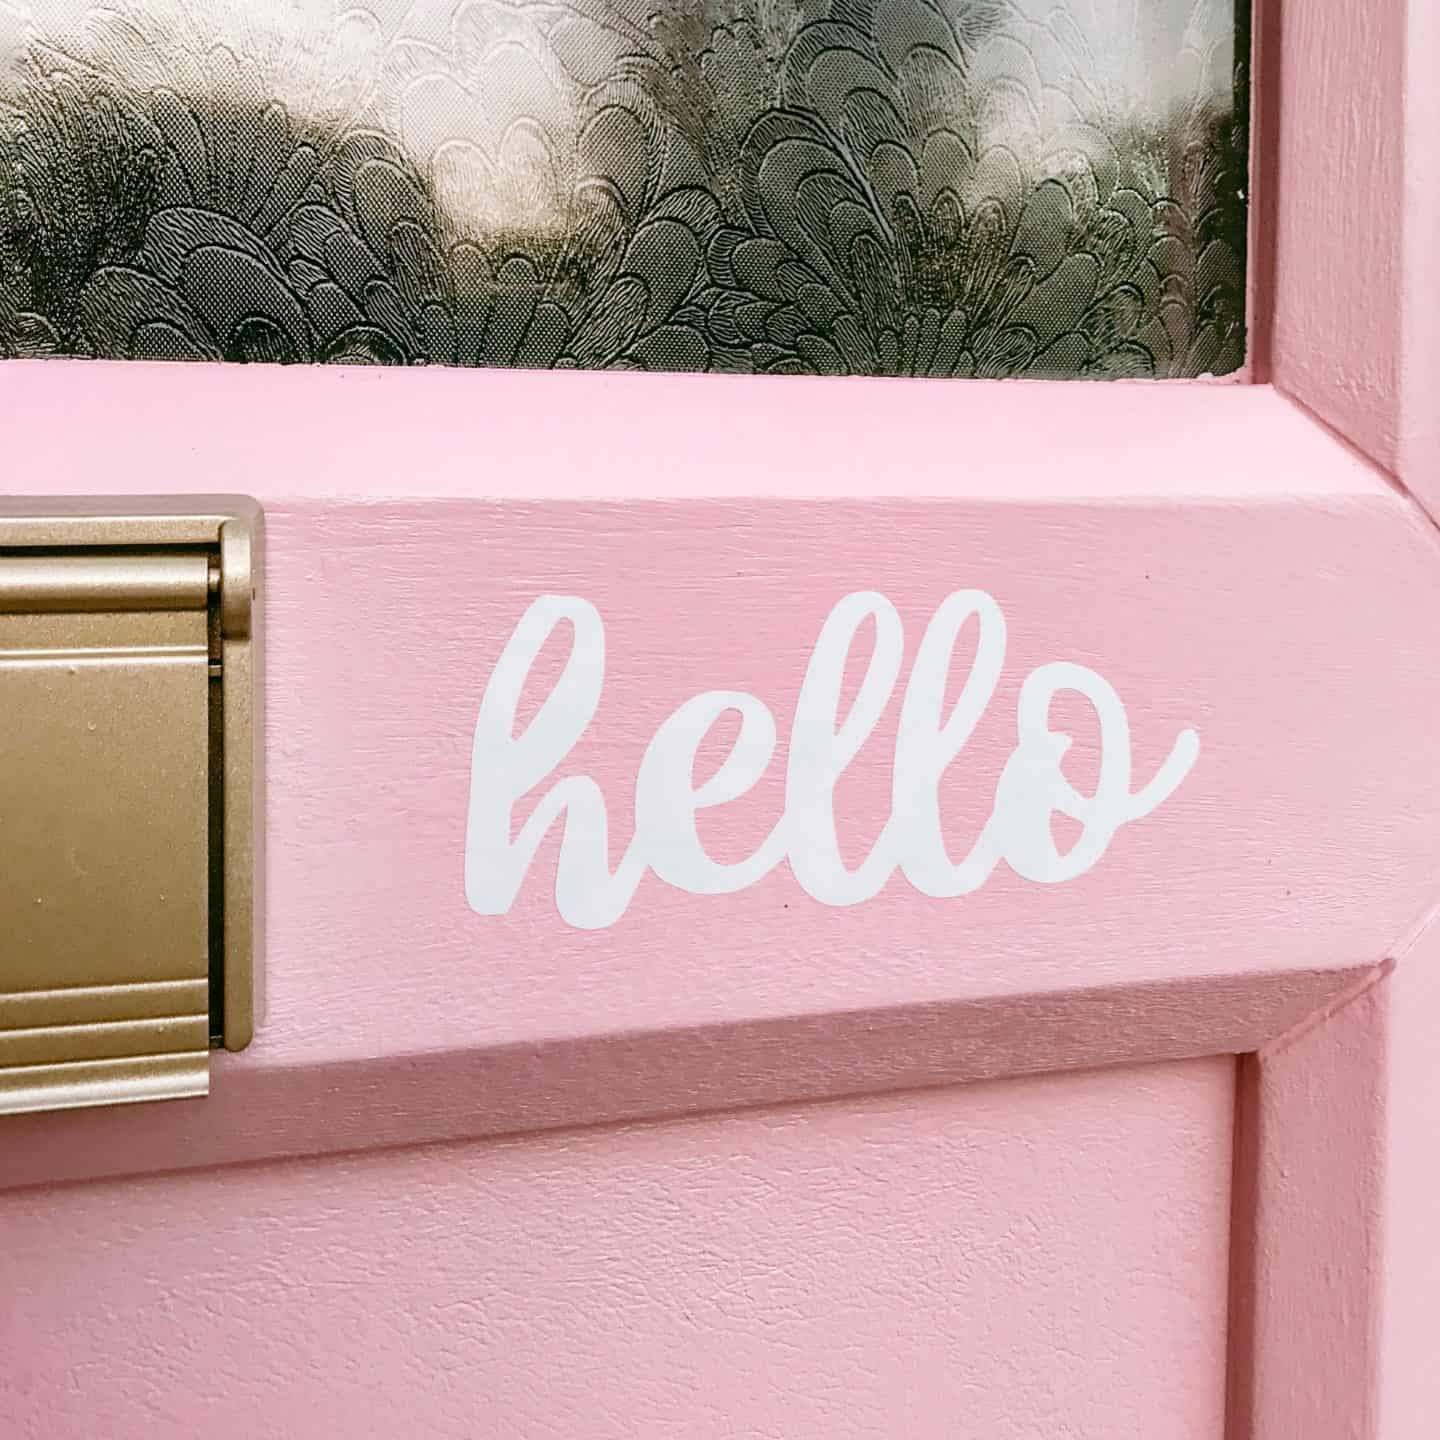 Hello vinyl sticker on a pink painted uPVC front door next to a gold letterbox